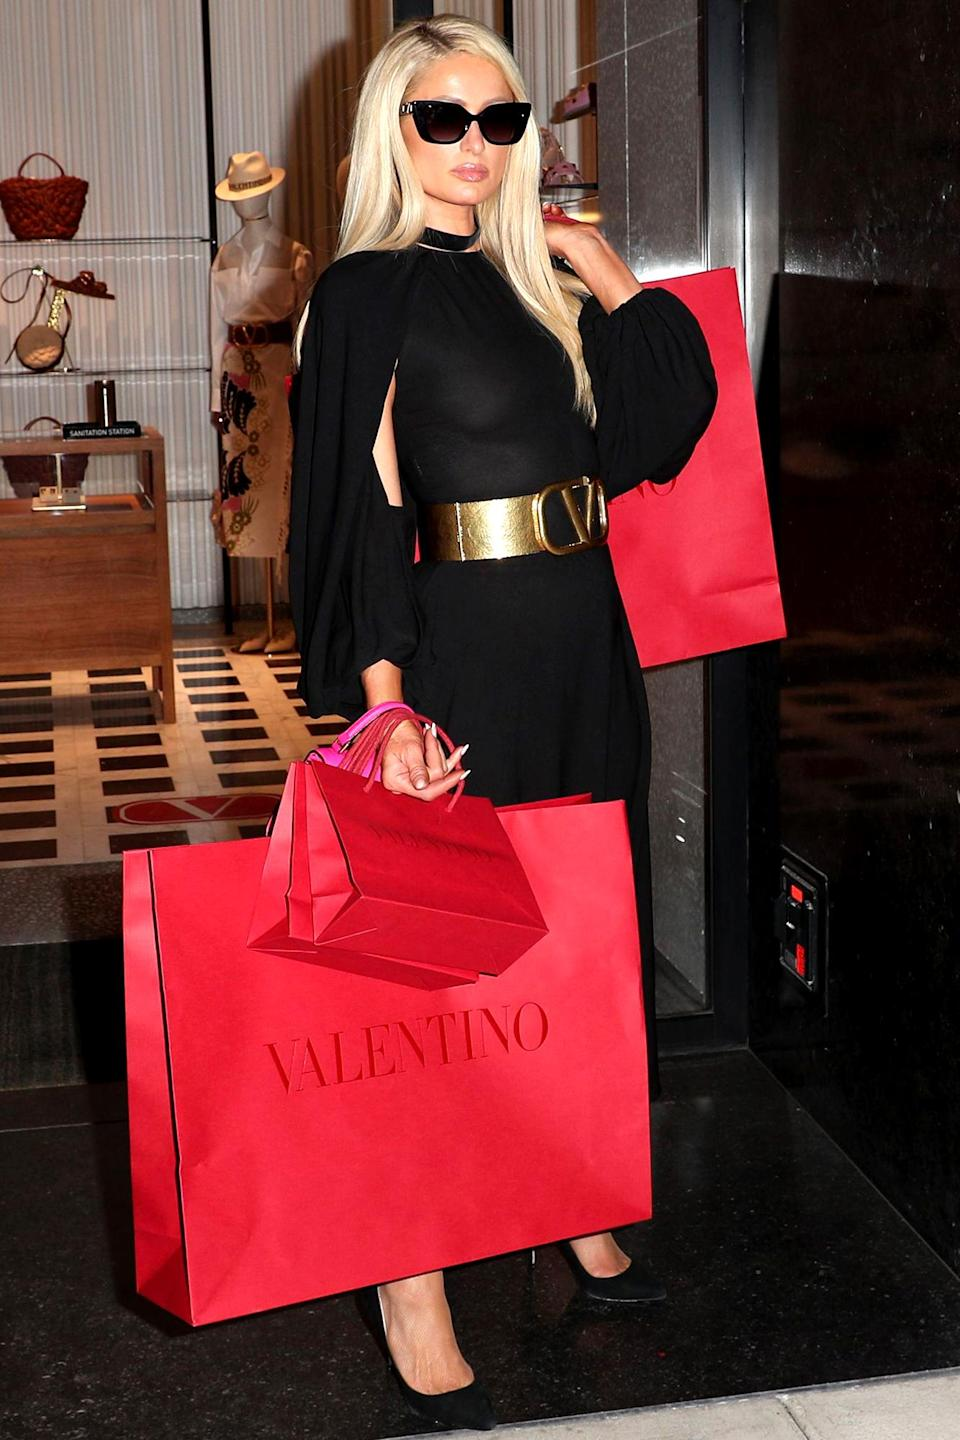 <p>Paris Hilton was spotted shopping at Valentino in Beverly Hills, California.</p>